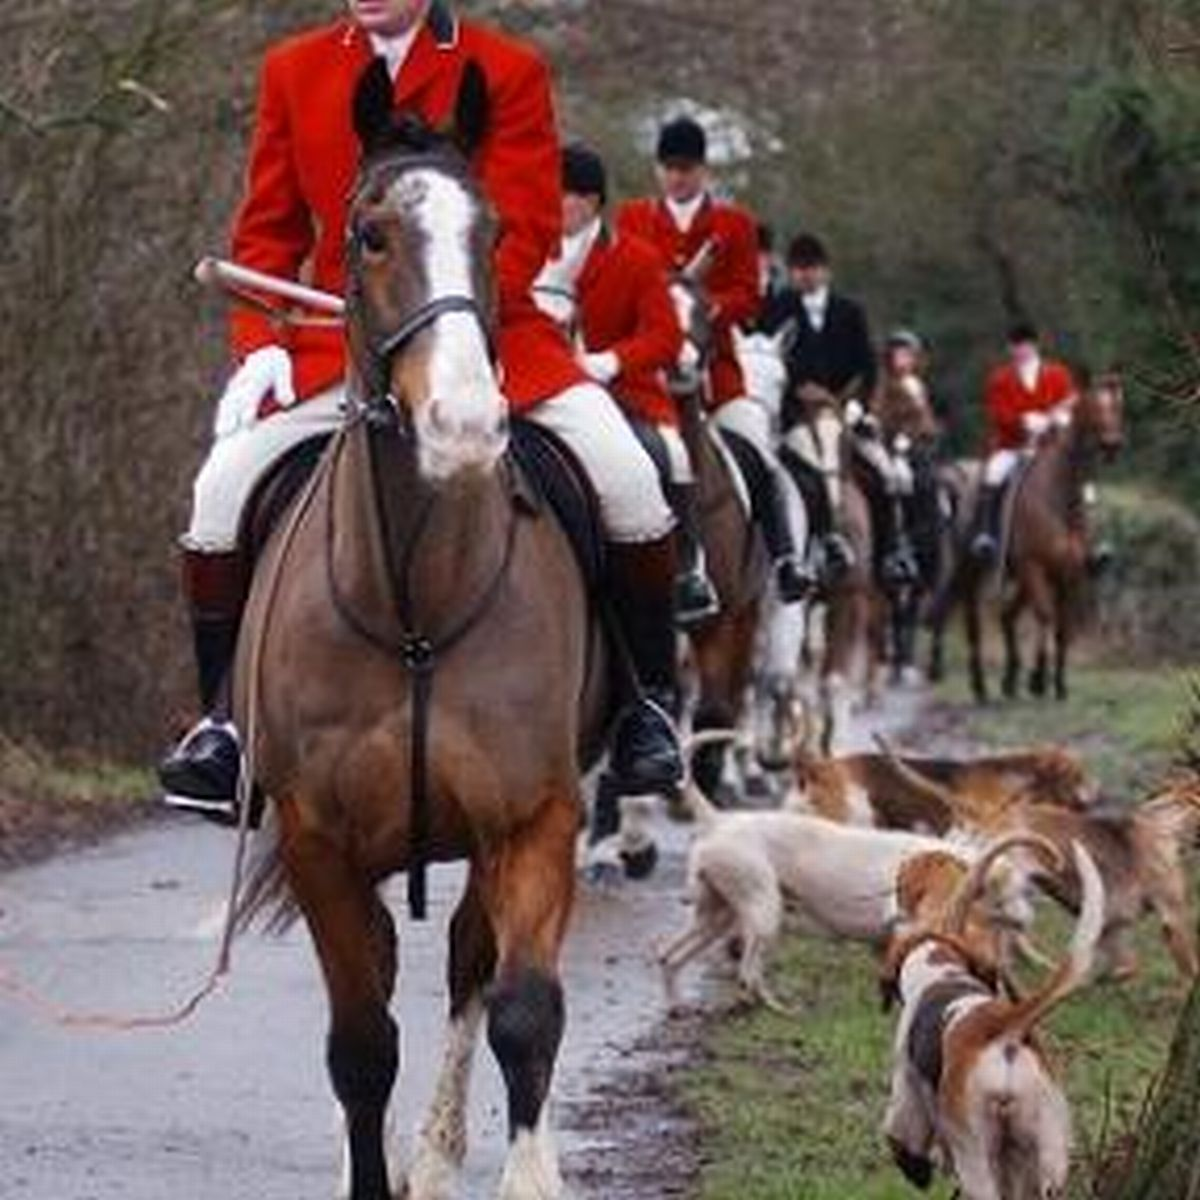 Hunt denies claims of illegal fox hunting